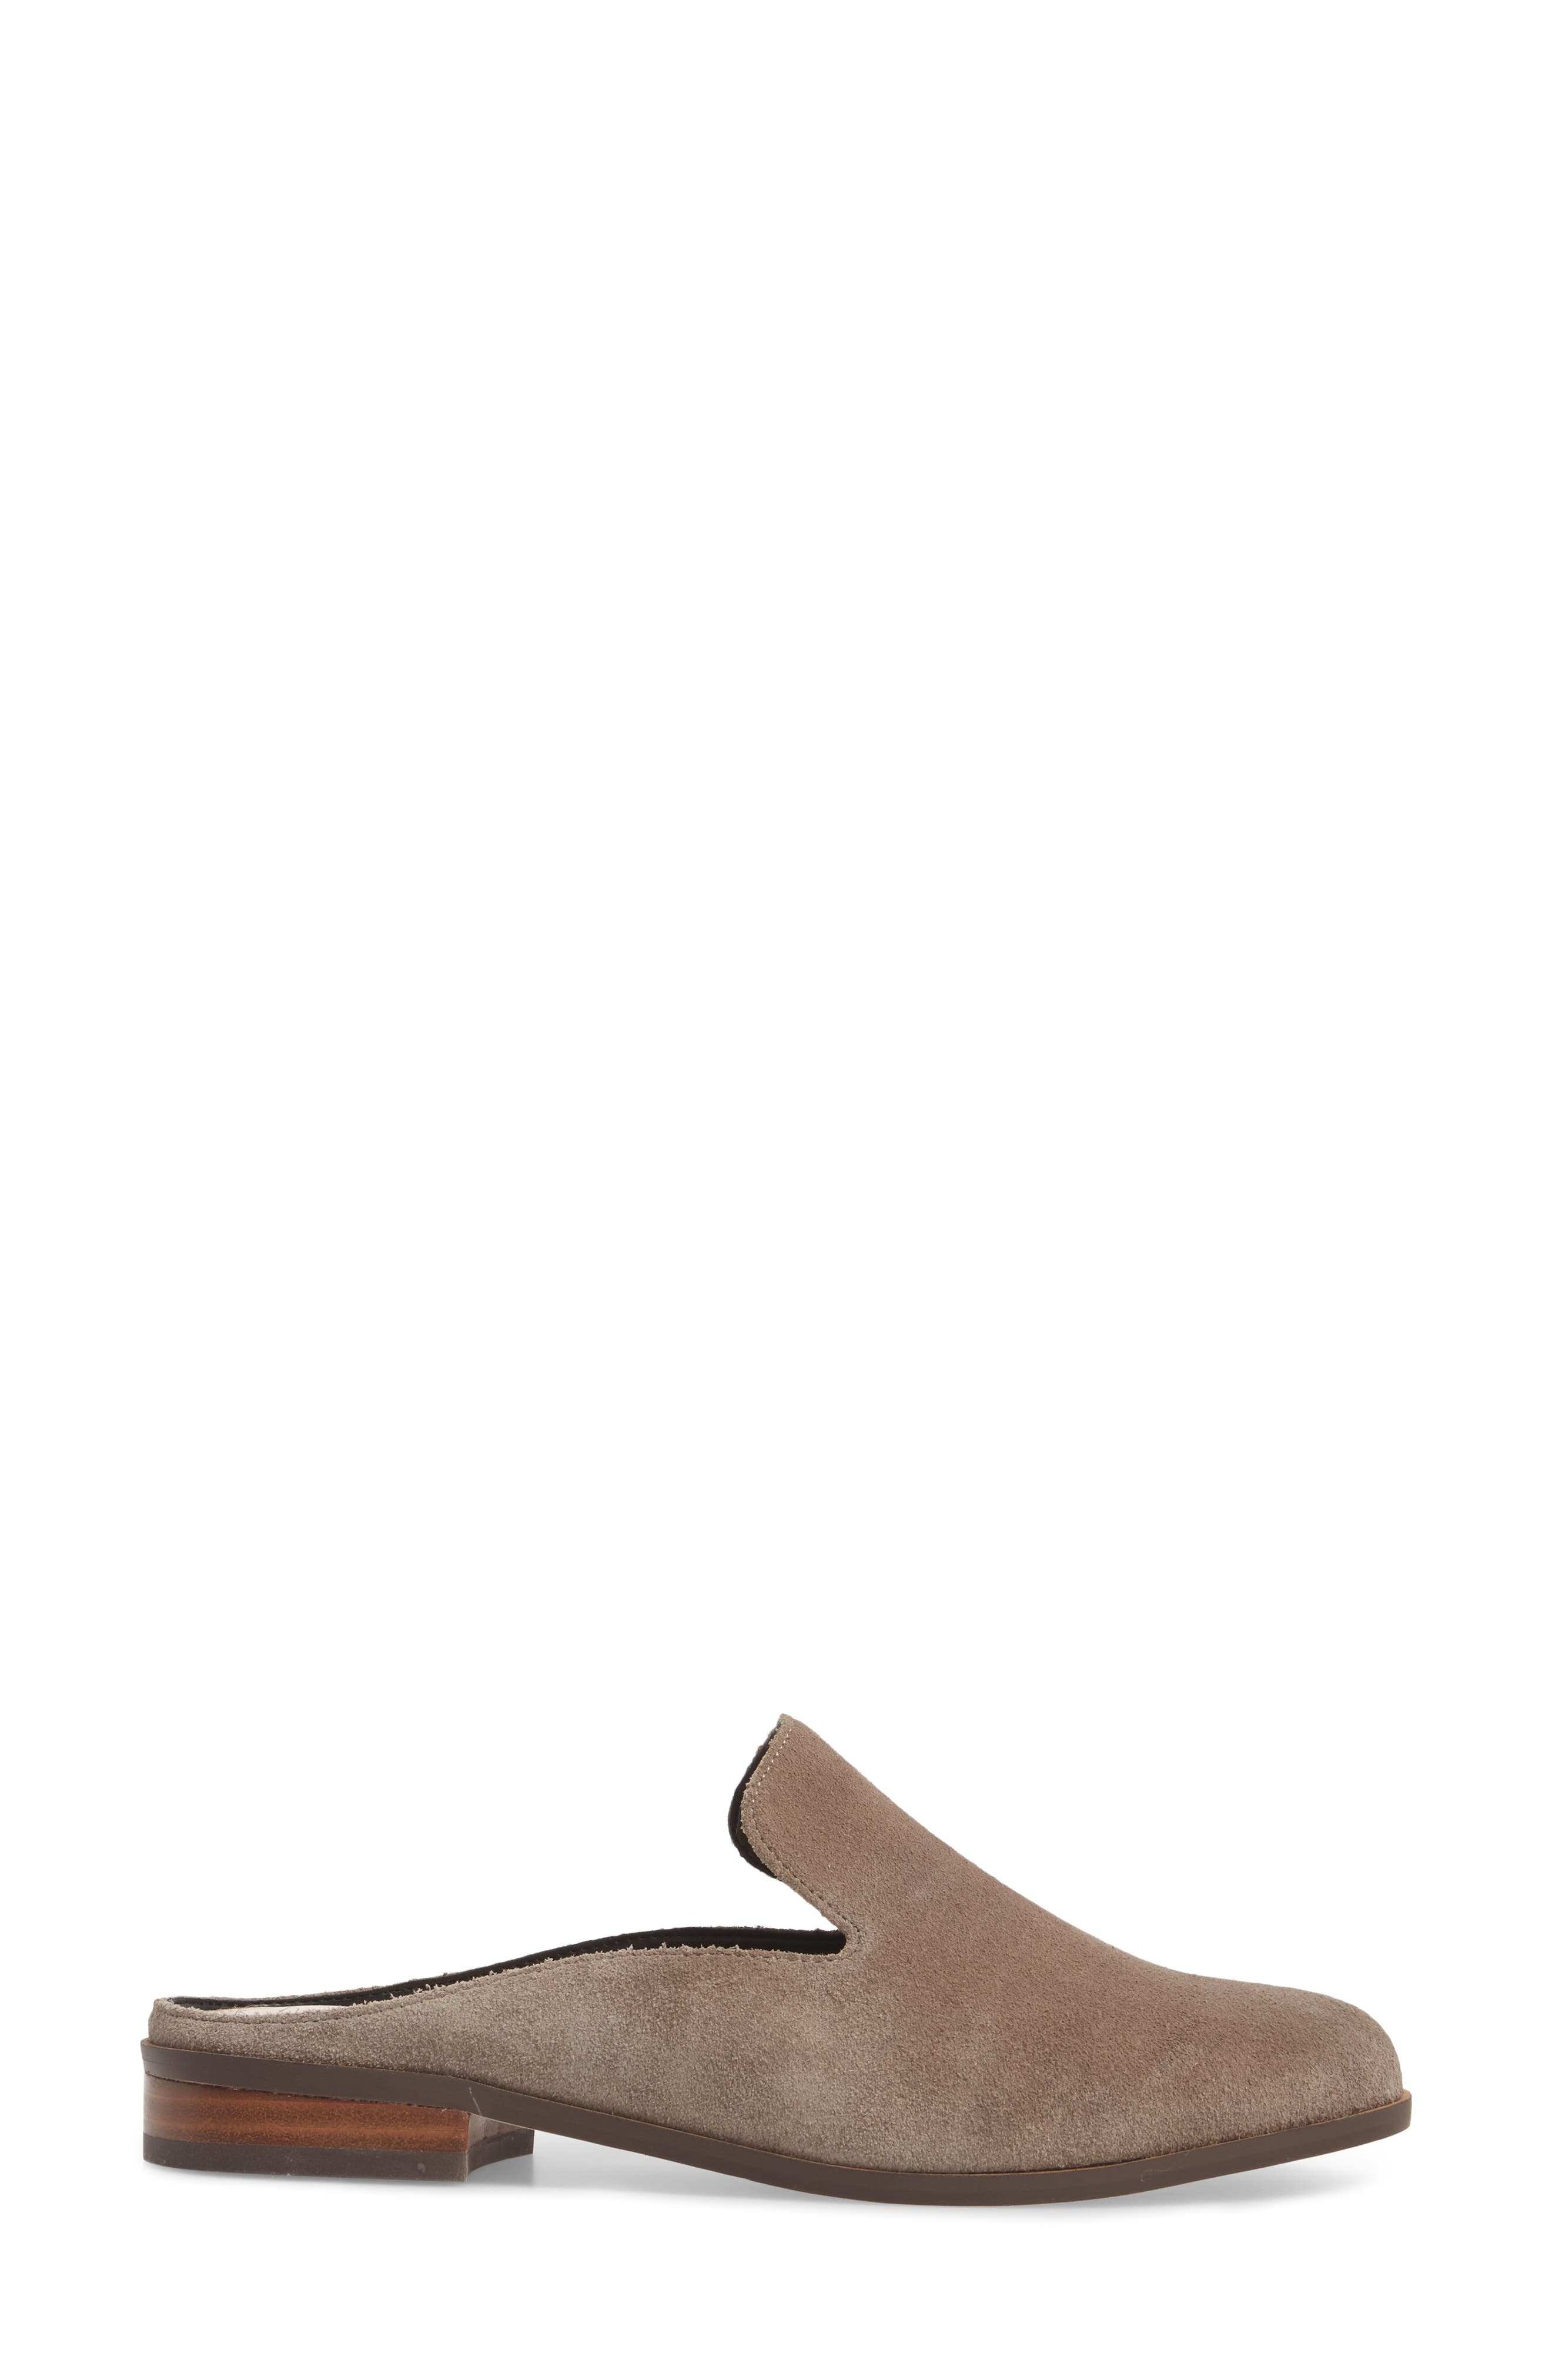 Alternate Image 3  - Sole Society Esther Loafer Mule (Women)